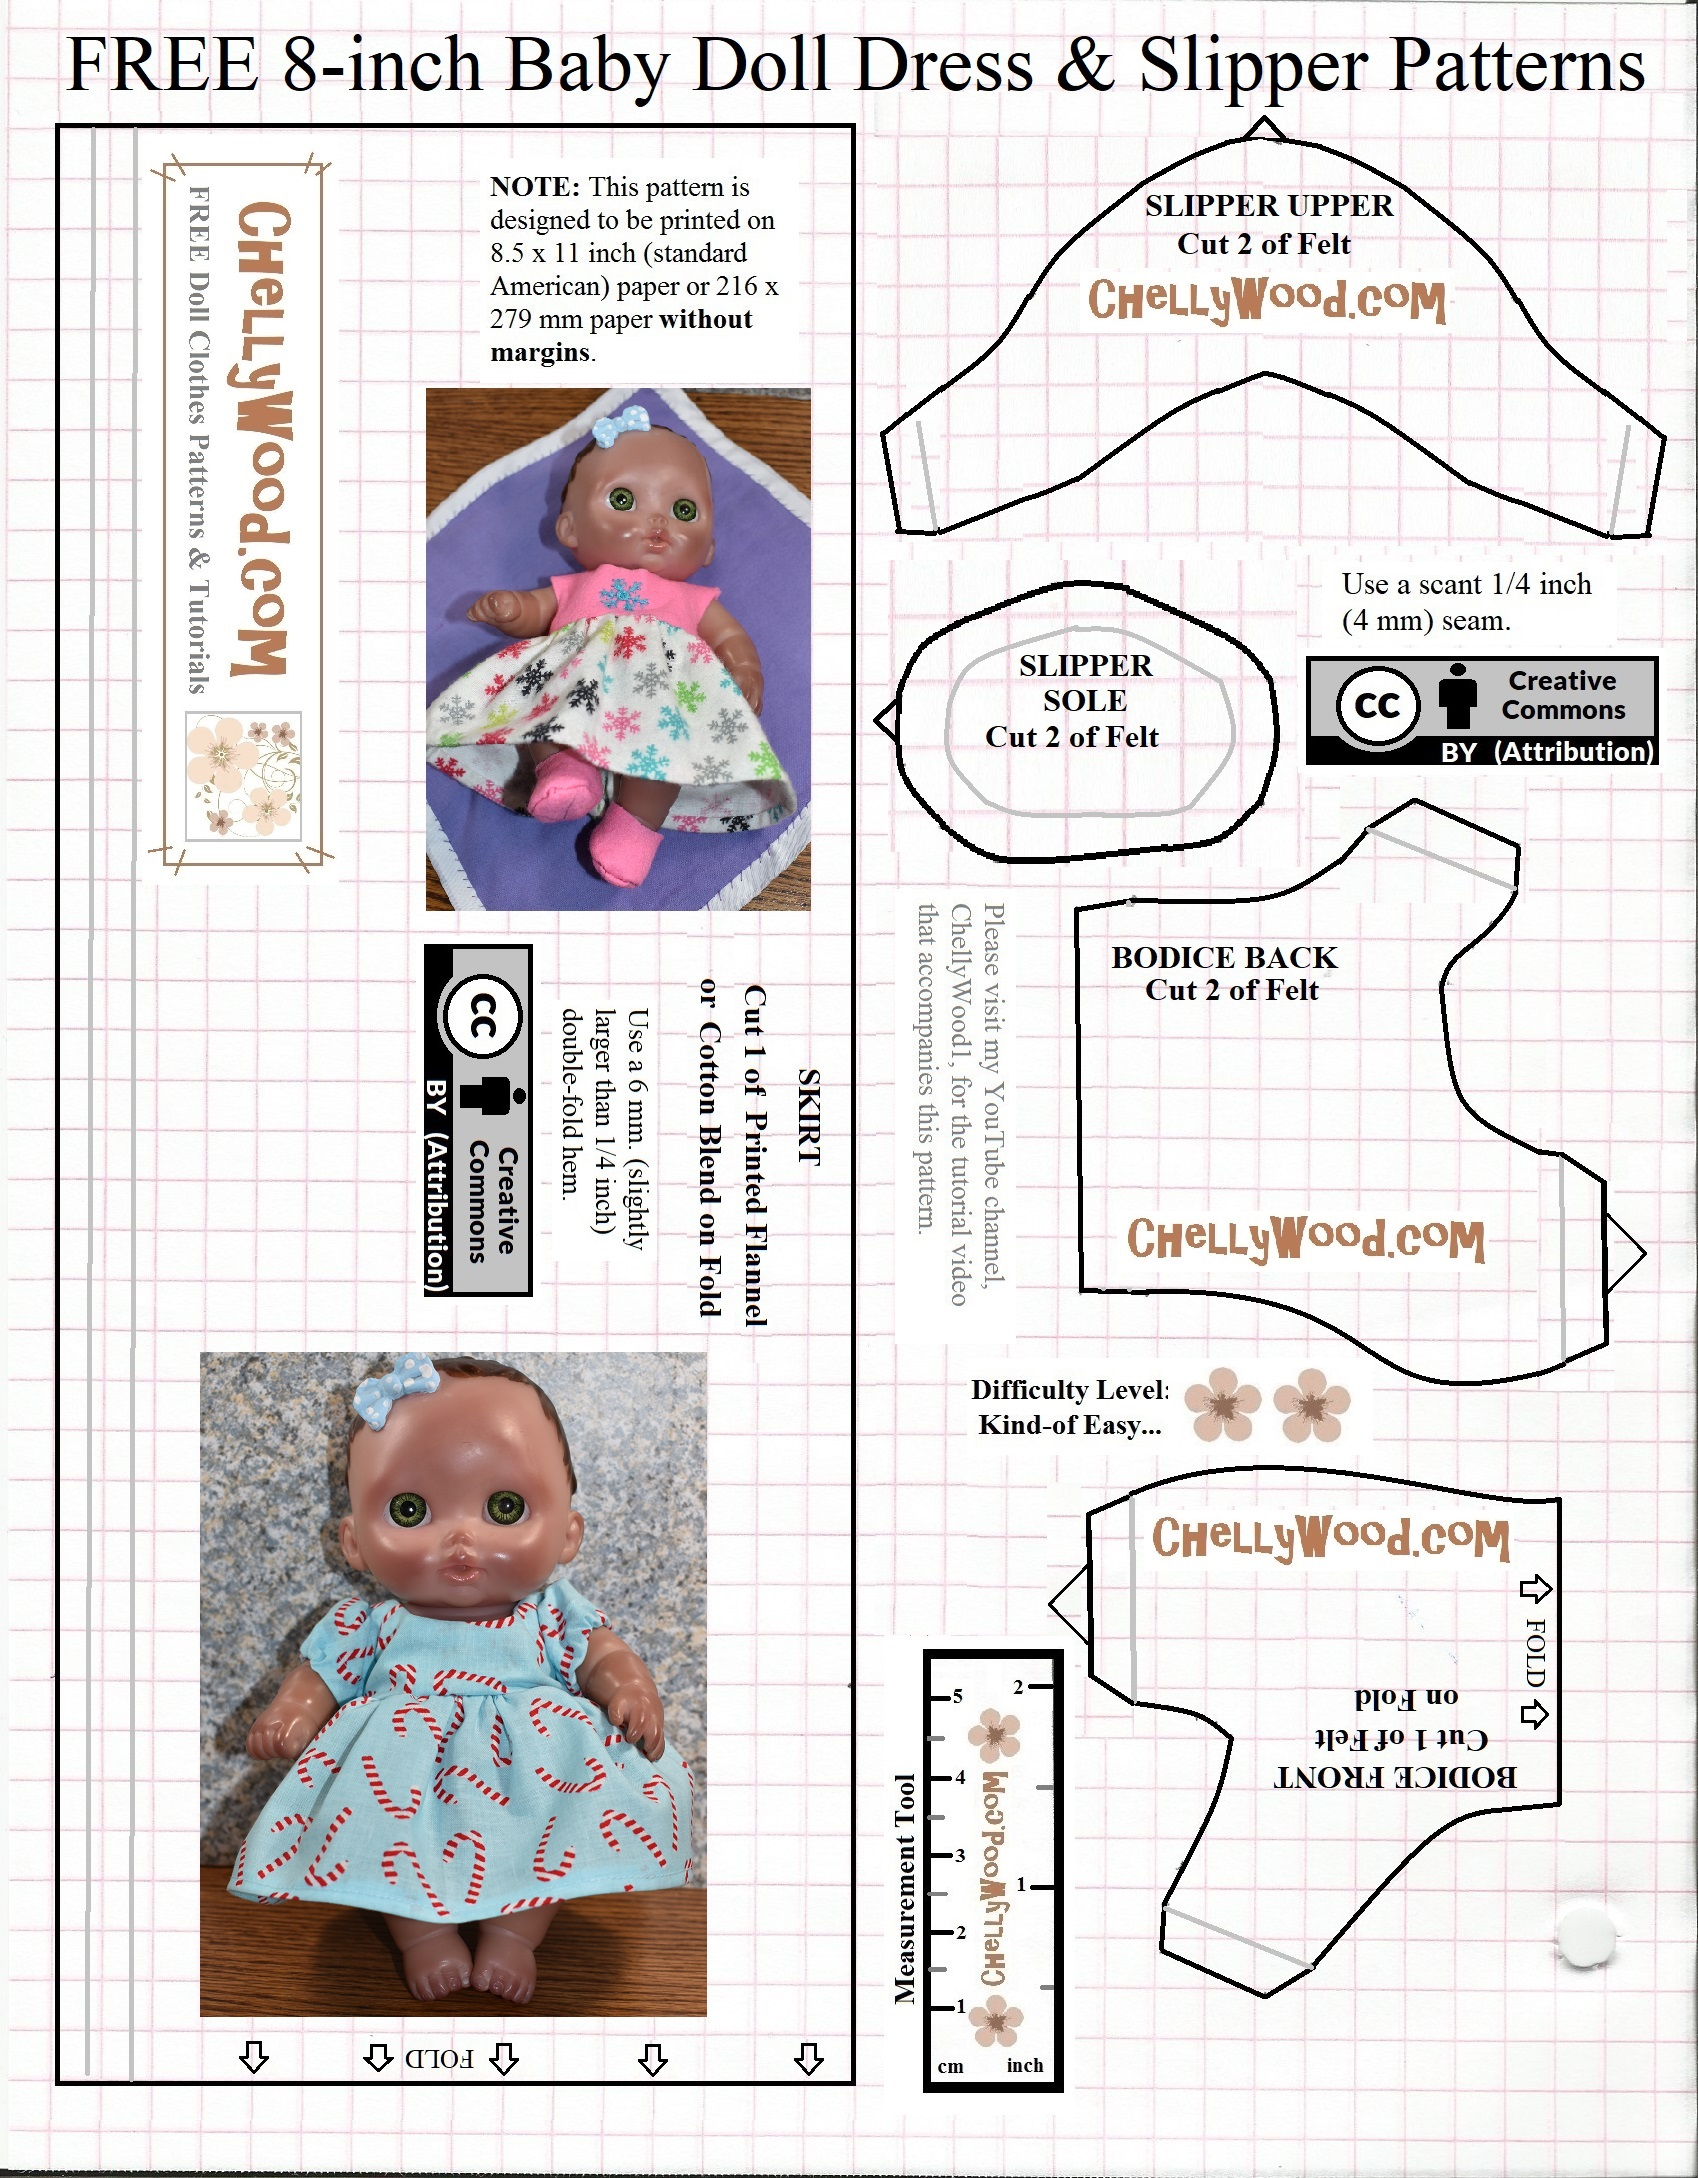 photograph about Free Printable Felt Doll Patterns titled Child Doll Routines Web site 2 Cost-free Doll Dresses Habits